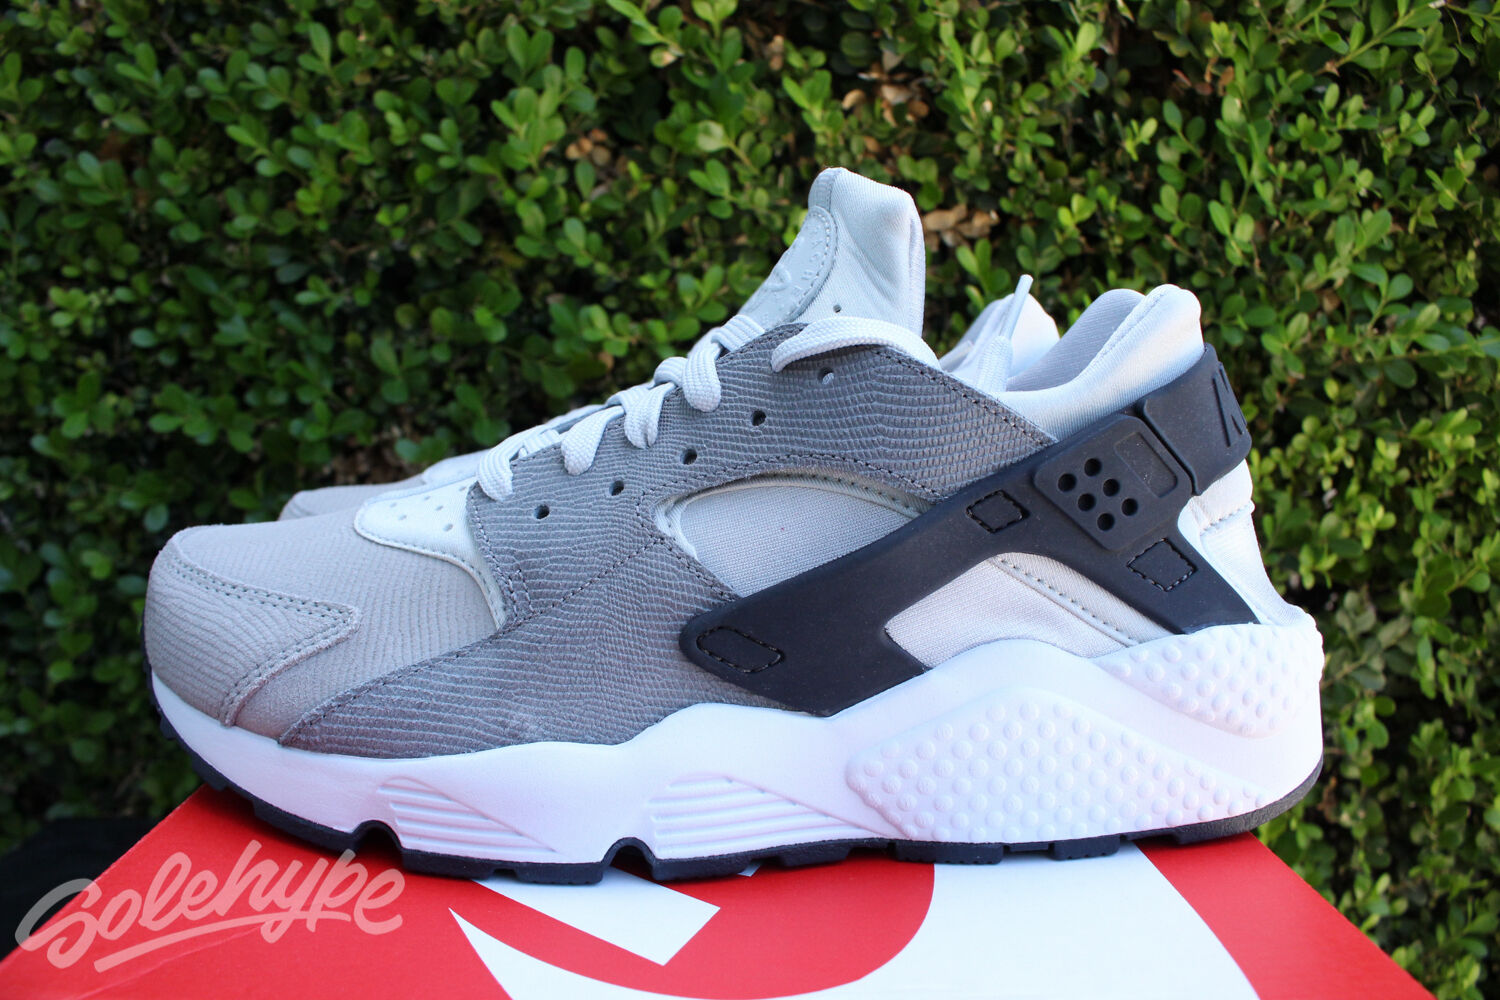 NIKE WOMENS AIR HUARACHE PREMIUM SZ 6.5 PURE PLATINUM COOL GREY WMNS 683818 009